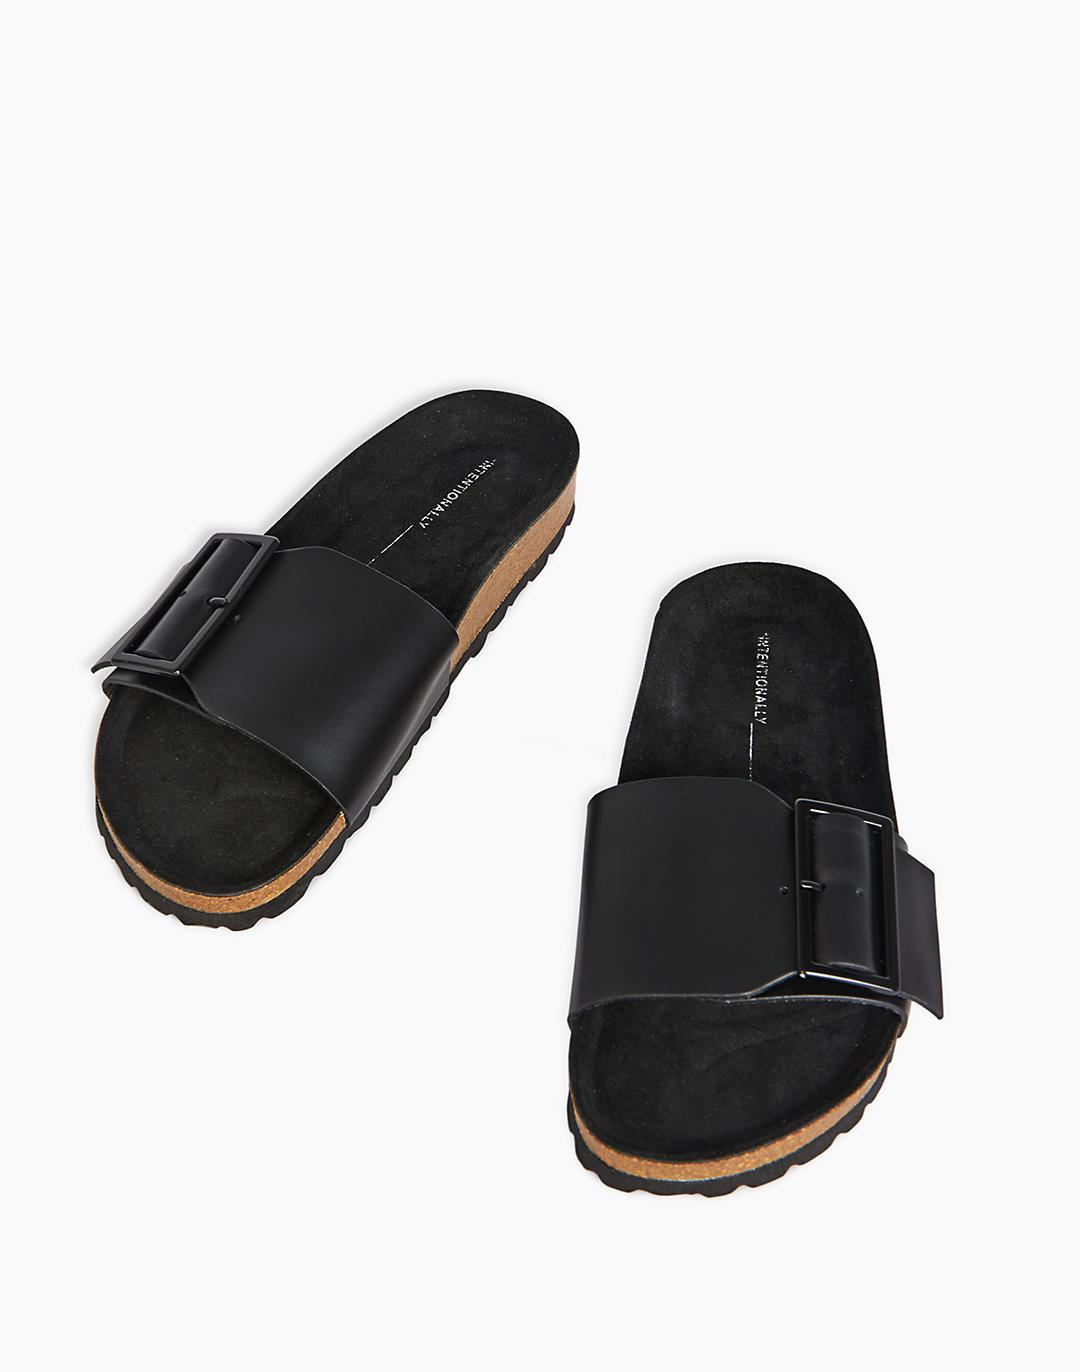 Intentionally Blank Claire Sandal